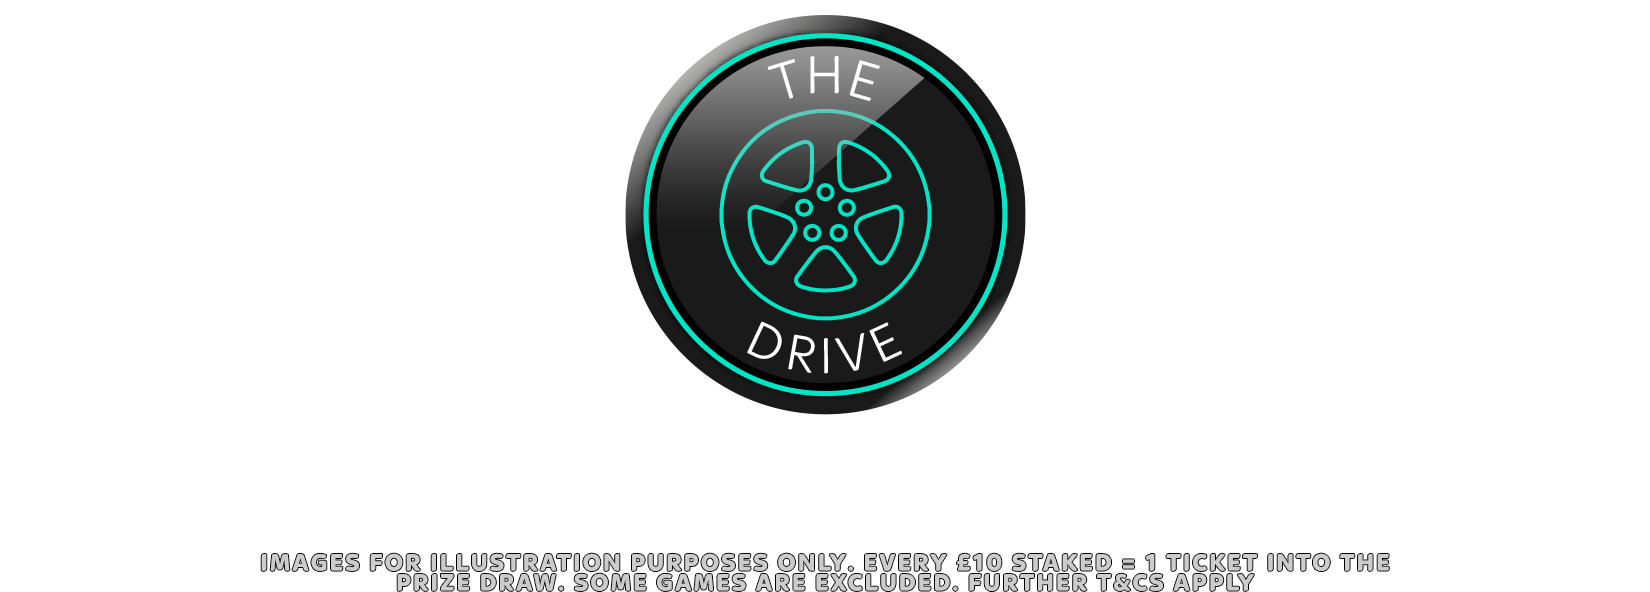 C.O.The.Drive.Opt.In